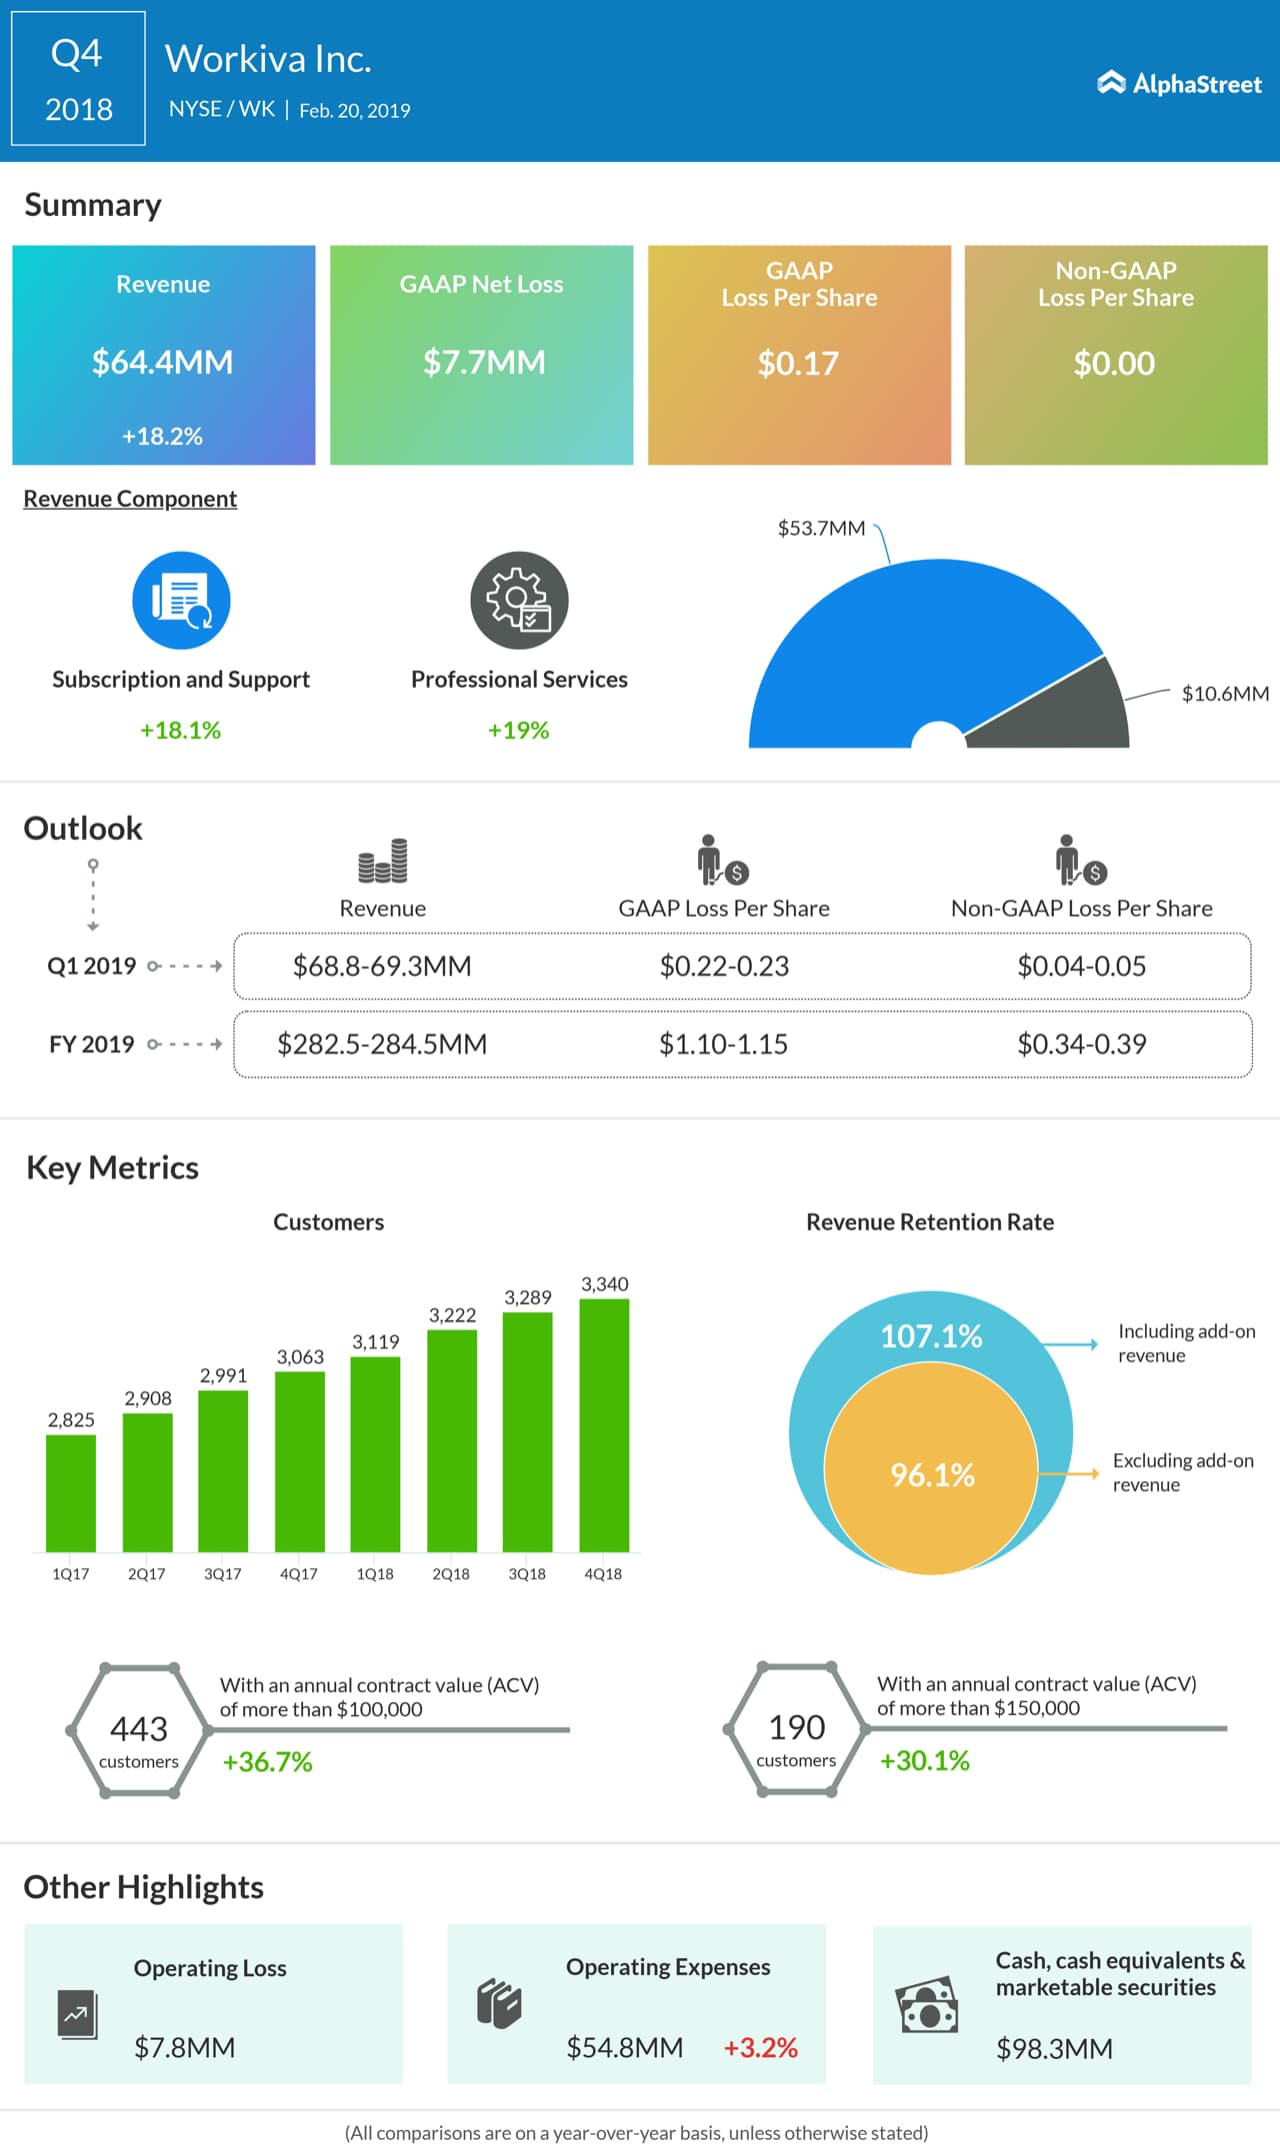 An infographic on Workiva's fourth quarter 2019 earnings results